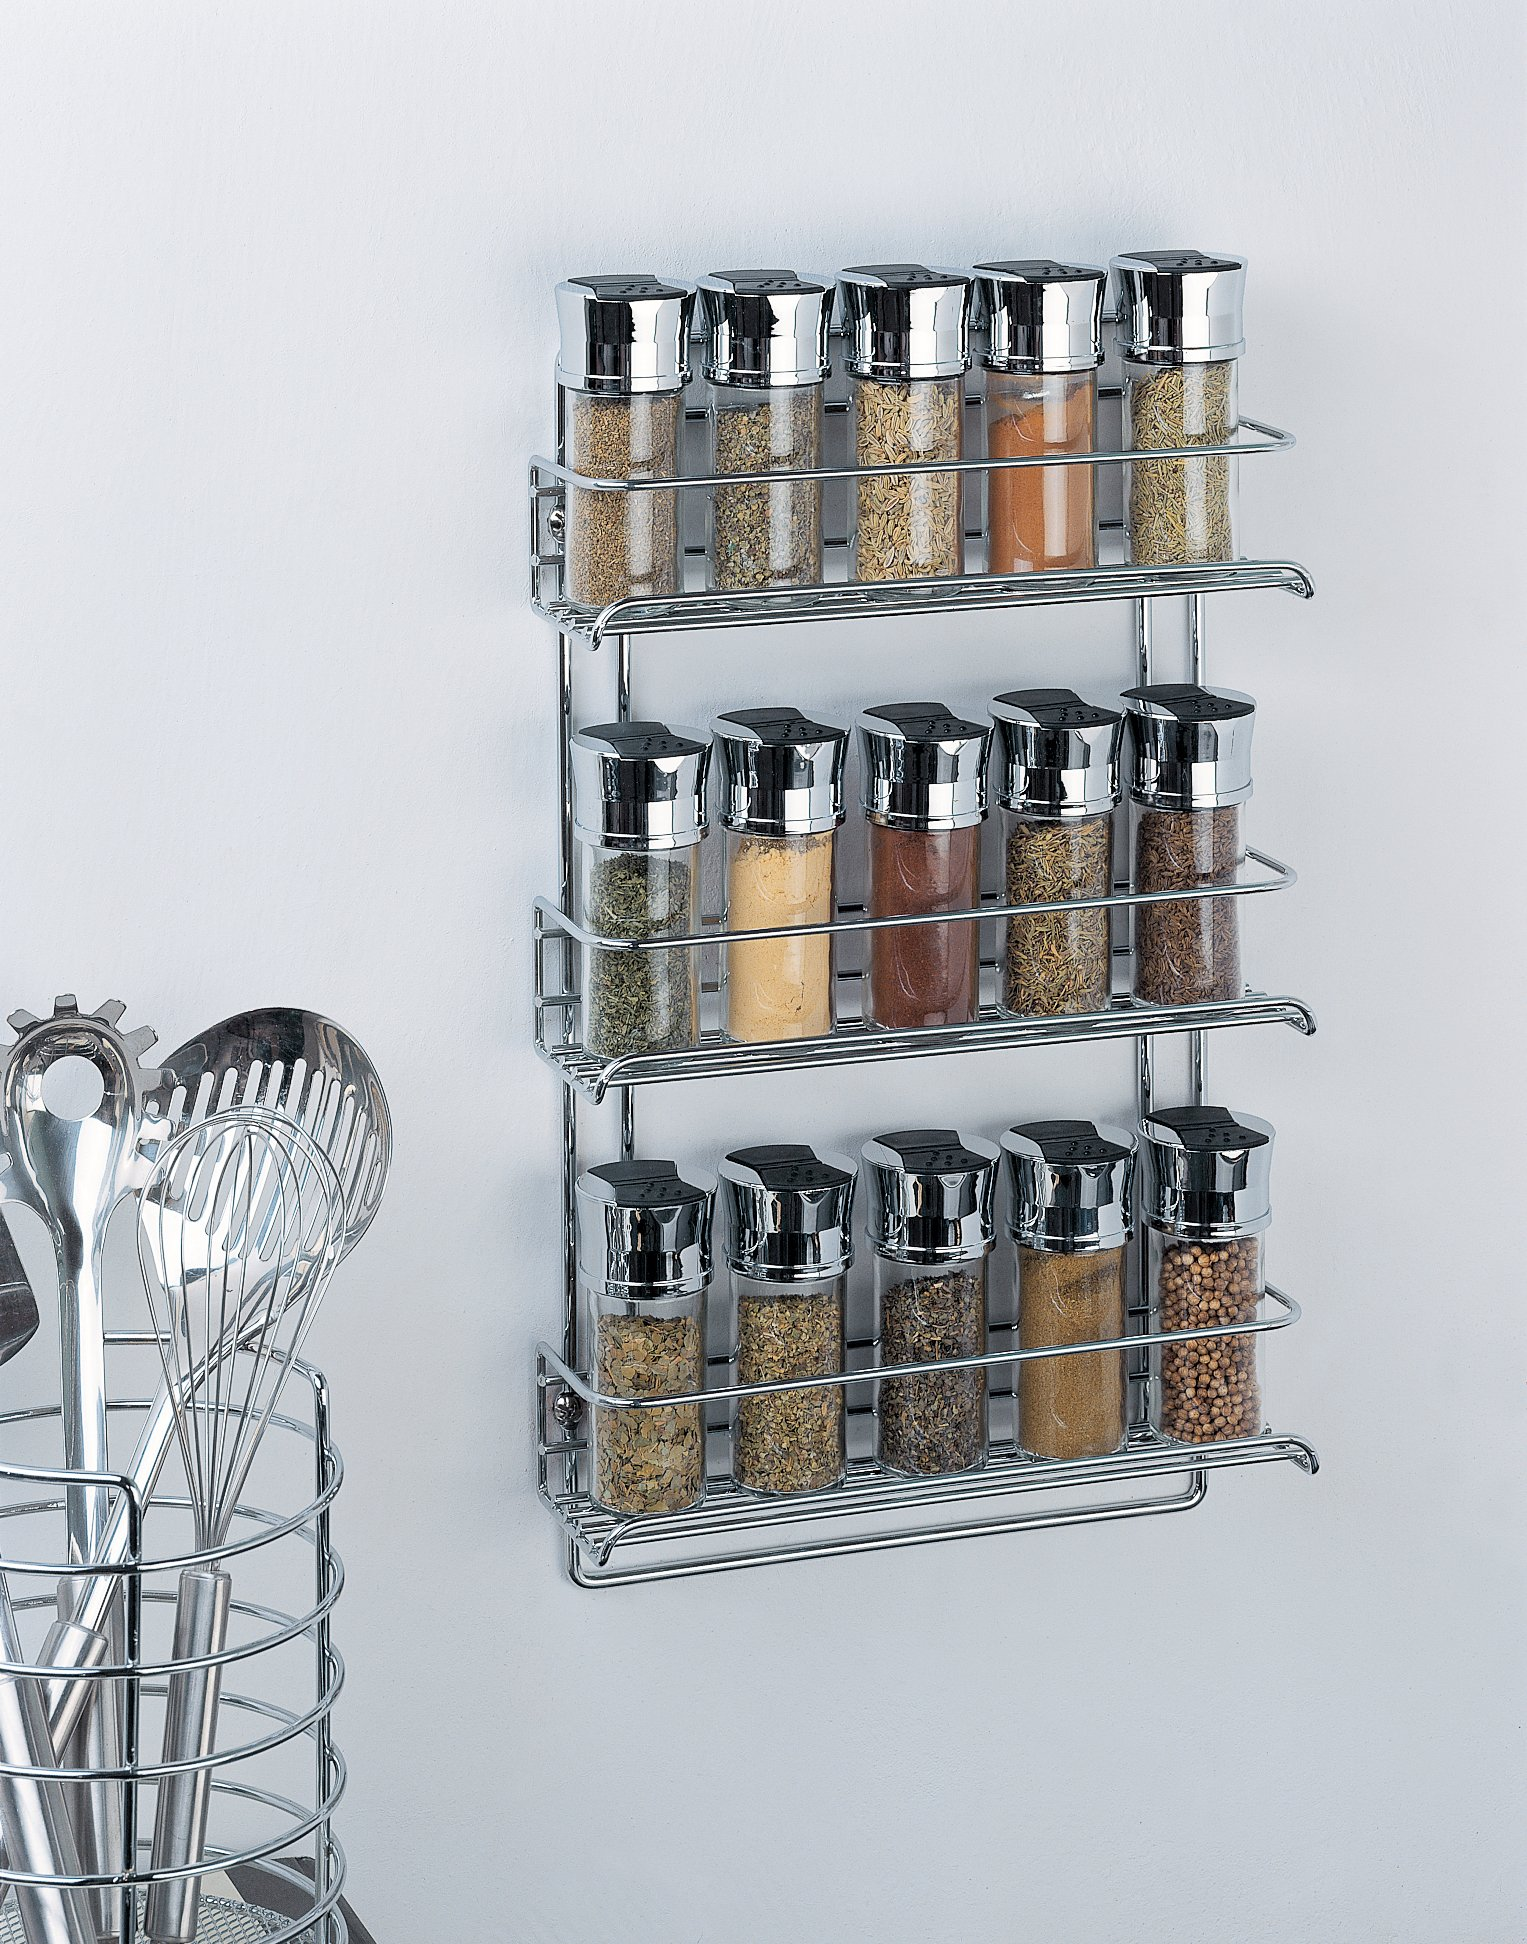 Organize It All 3-Tier Wall-Mounted Spice Rack (Chrome) by Organize It All (Image #2)